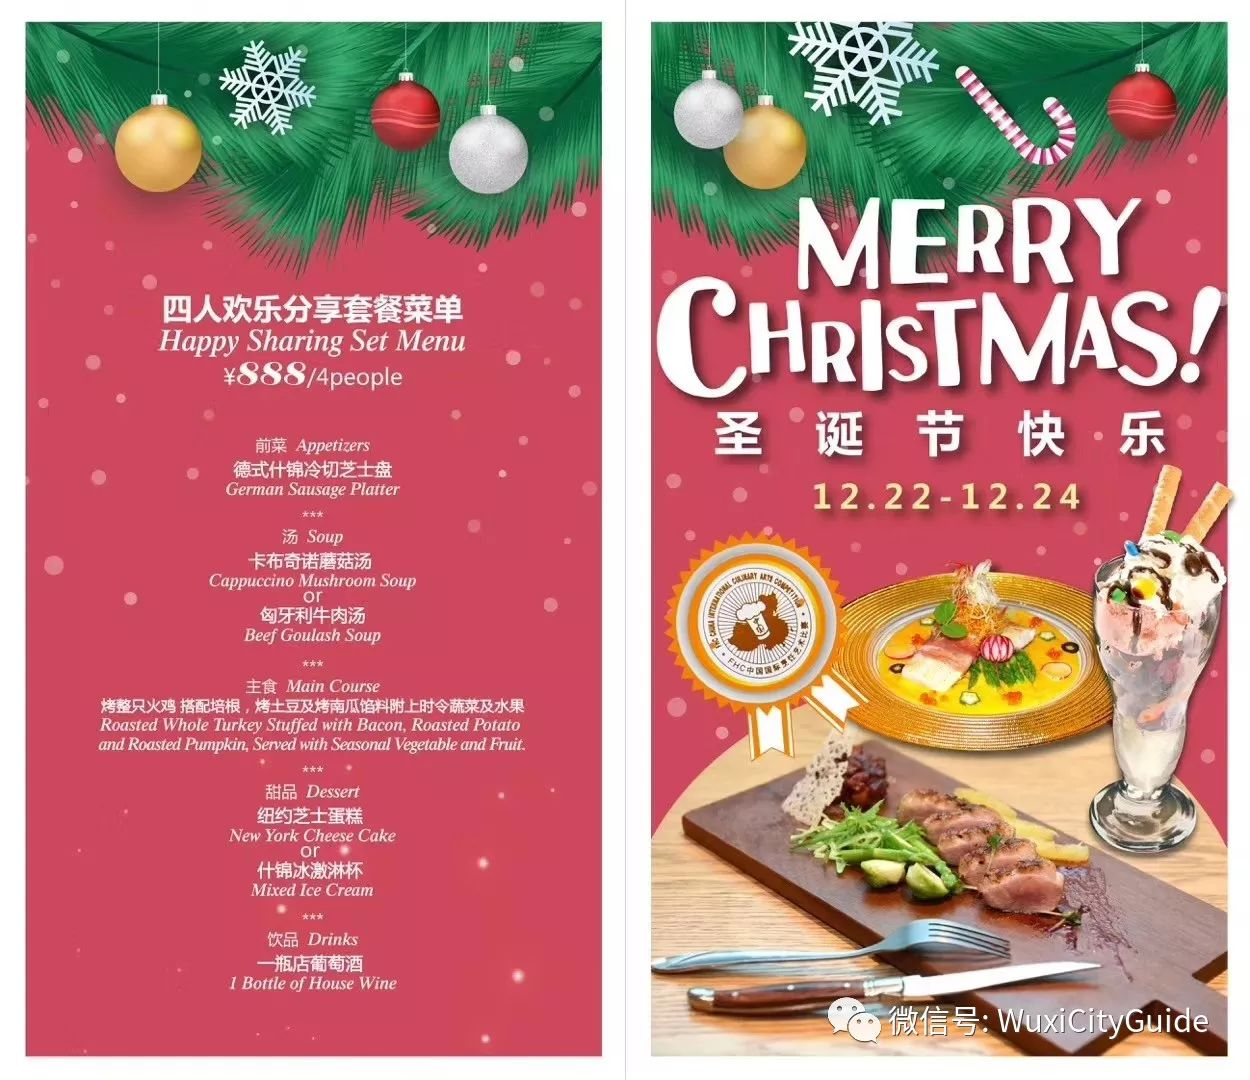 Blue Marlin Christmas Menu